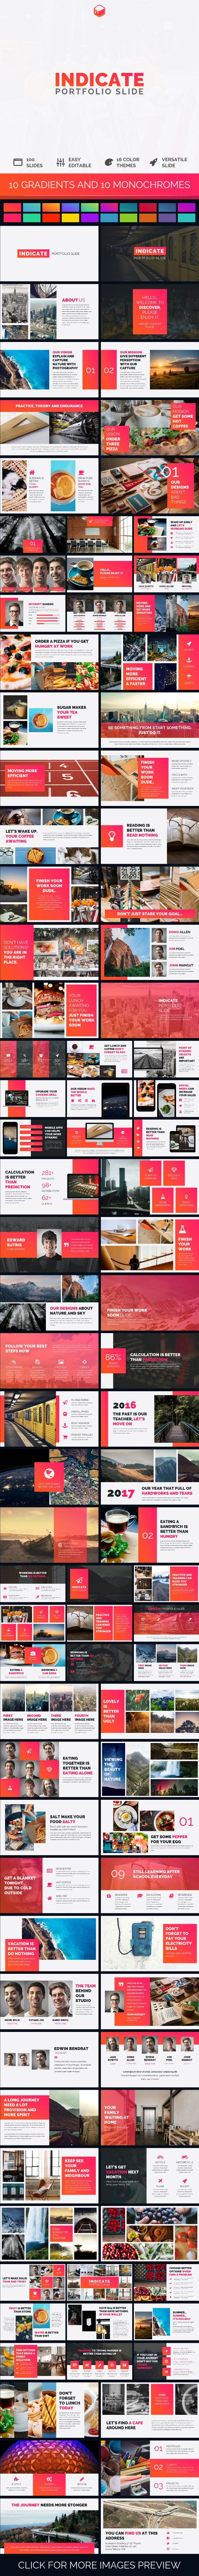 Indicate - Portfolio Slide - #PowerPoint Templates #Presentation #Templates Download here: https://graphicriver.net/item/indicate-portfolio-slide/19514507?ref=alena994